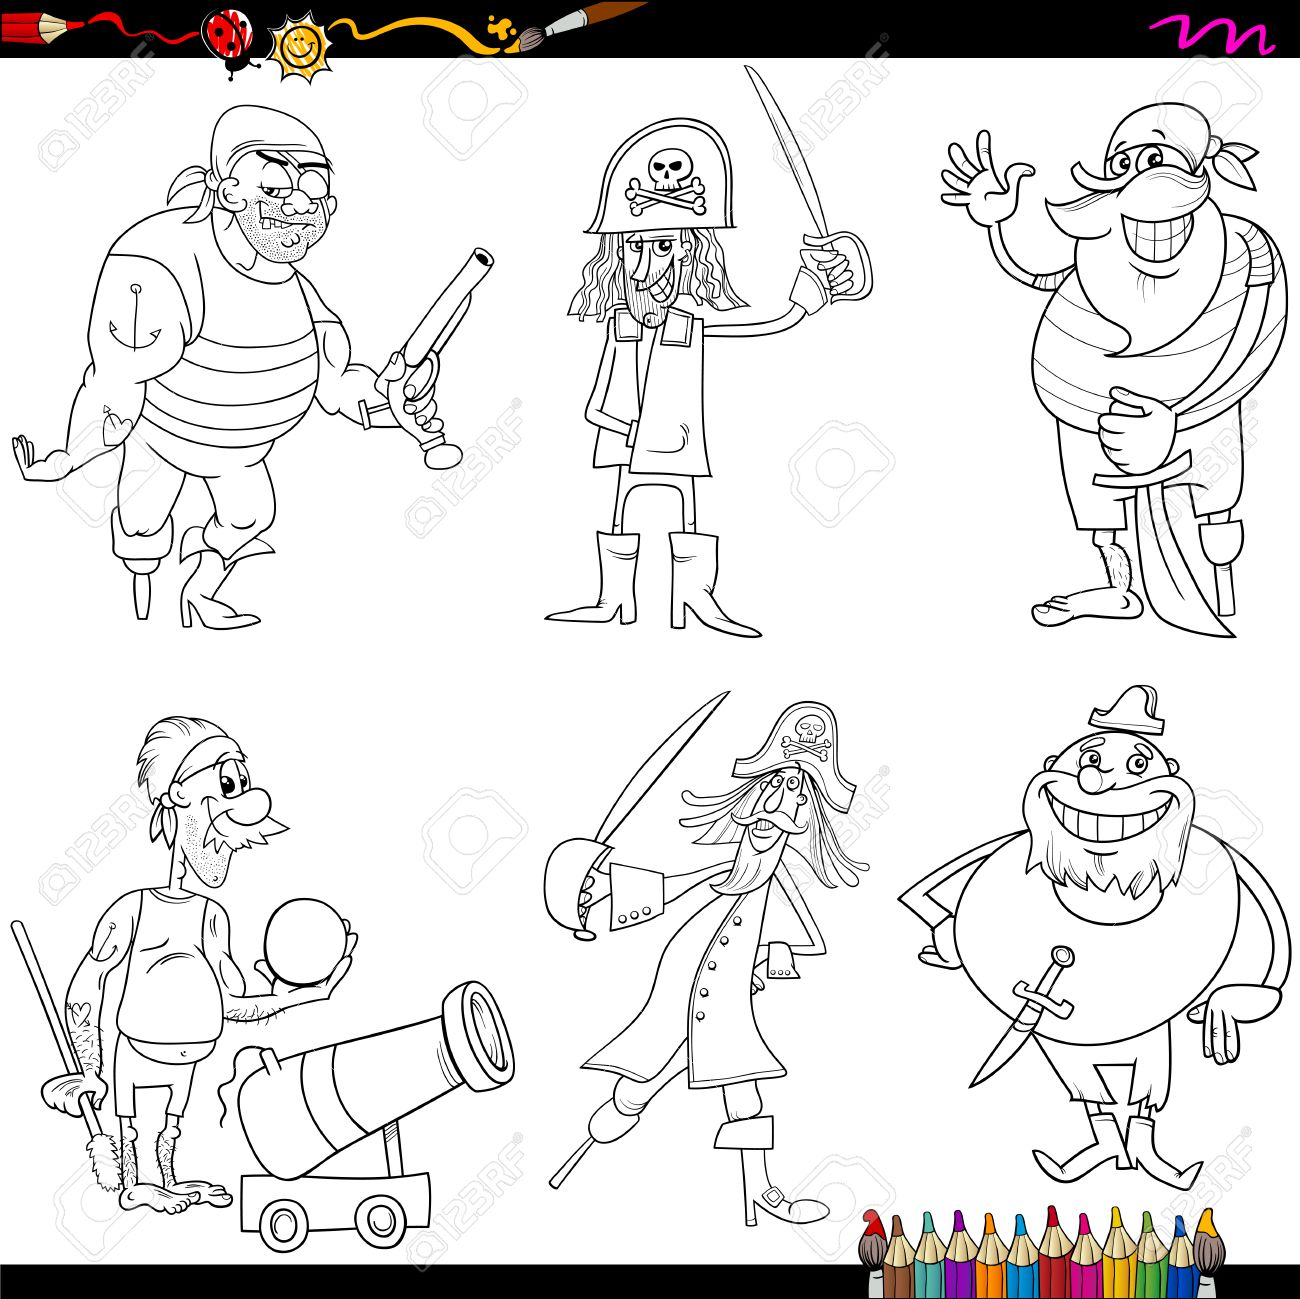 coloring book cartoon ilustración de divertidos personajes de la